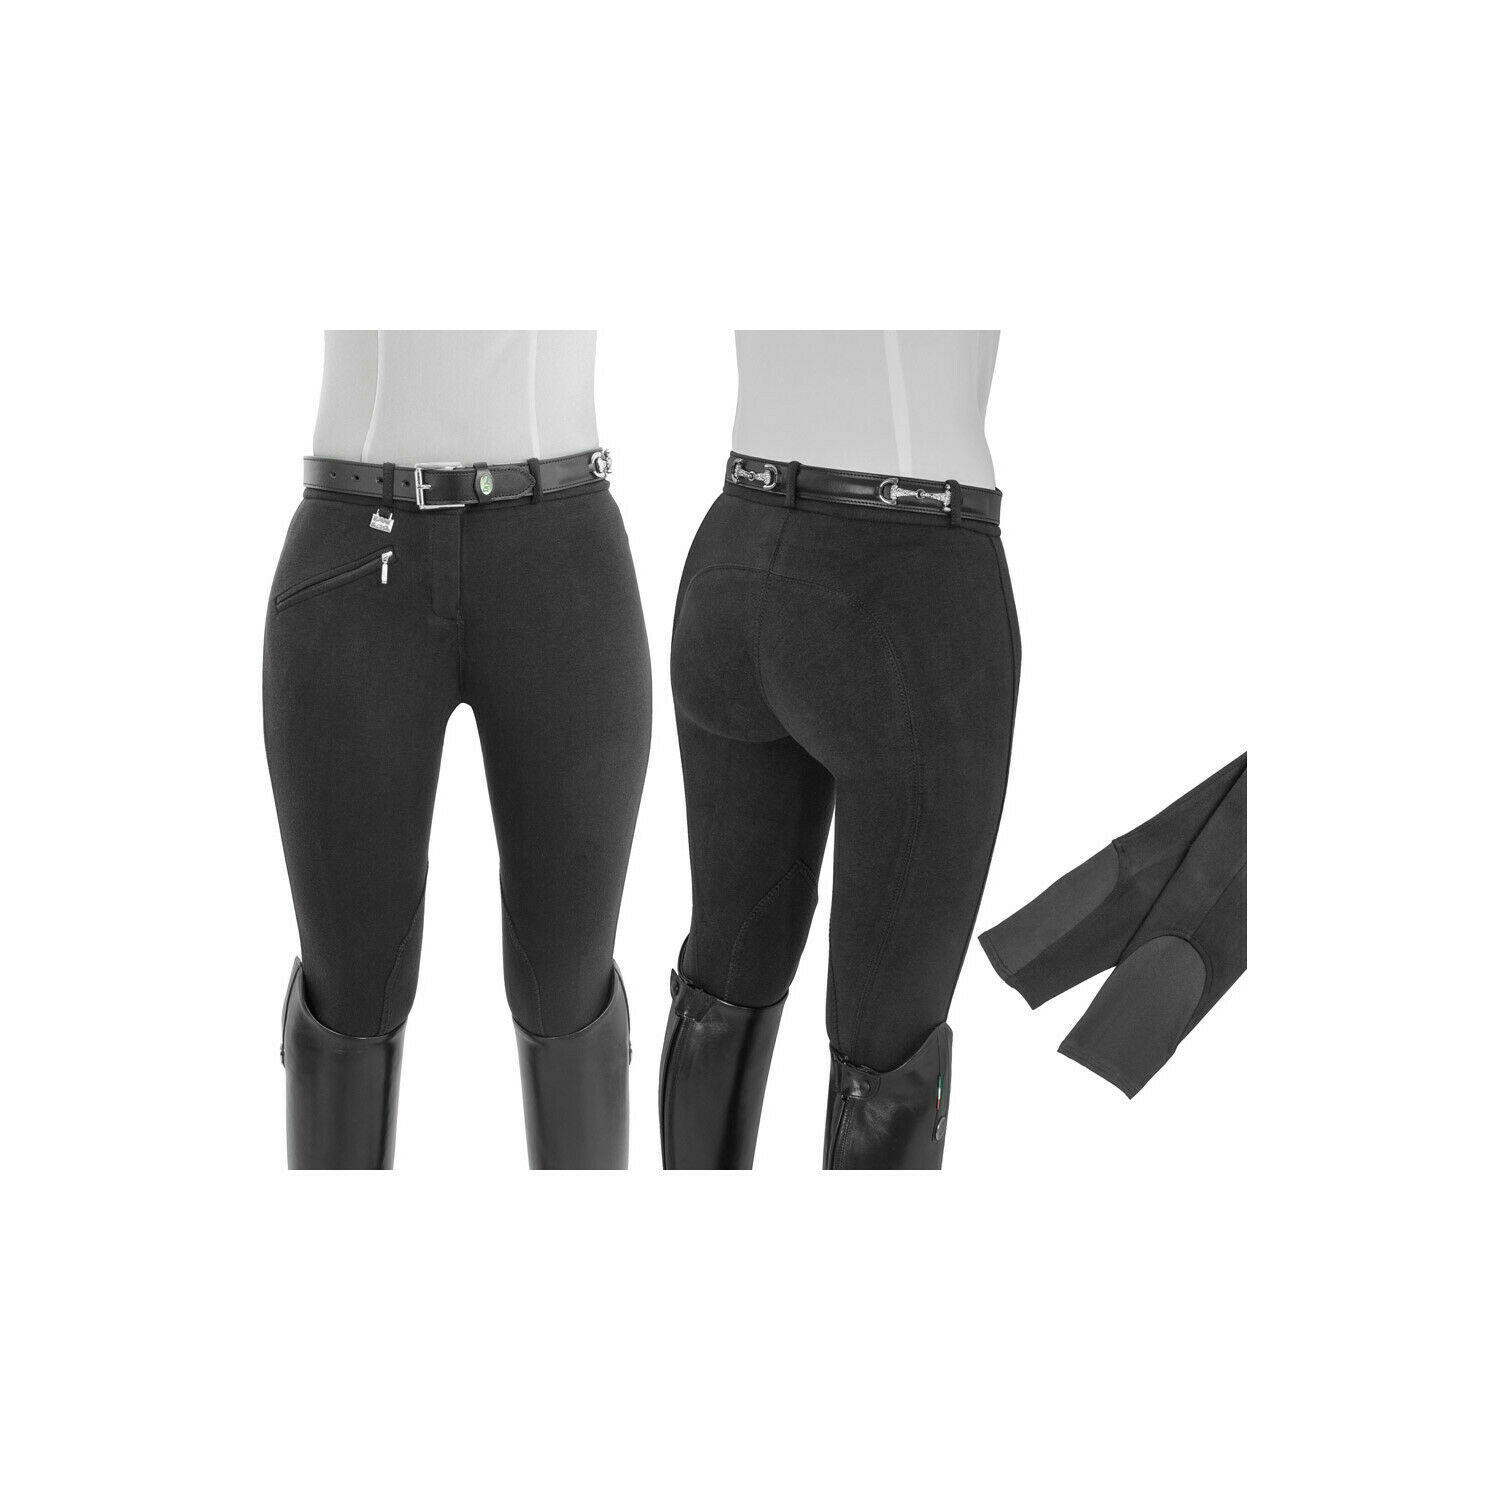 Trousers daSie Selene equestro Fitted Waist